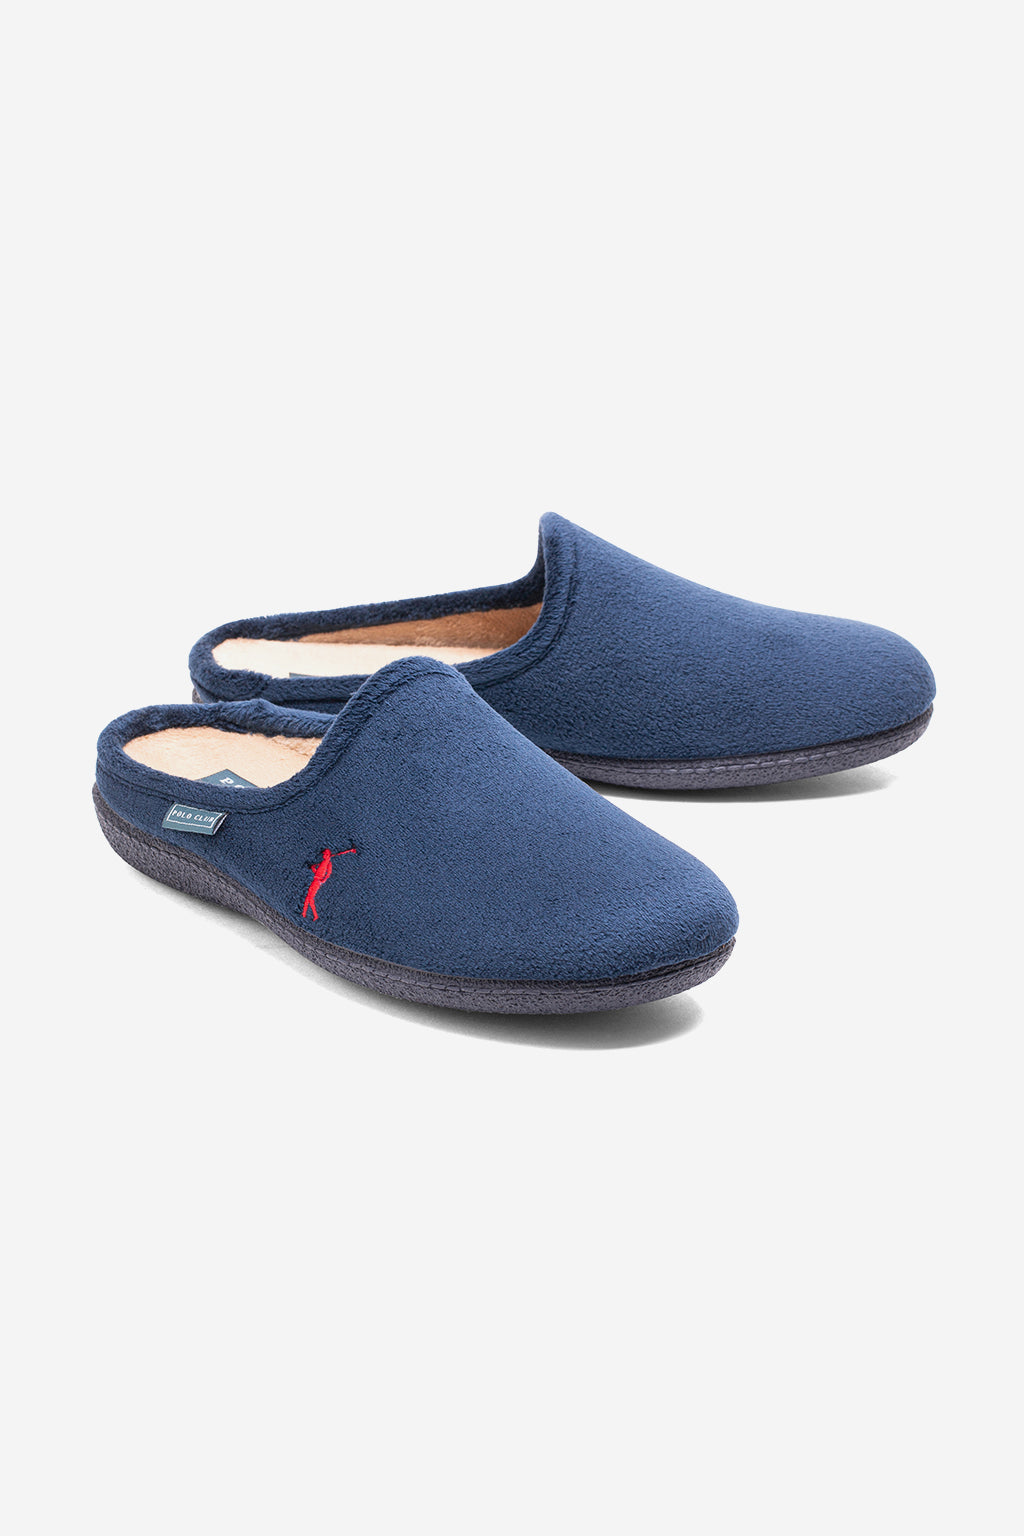 Zapatillas de casa azul marino Slippers Mini Rigby Go